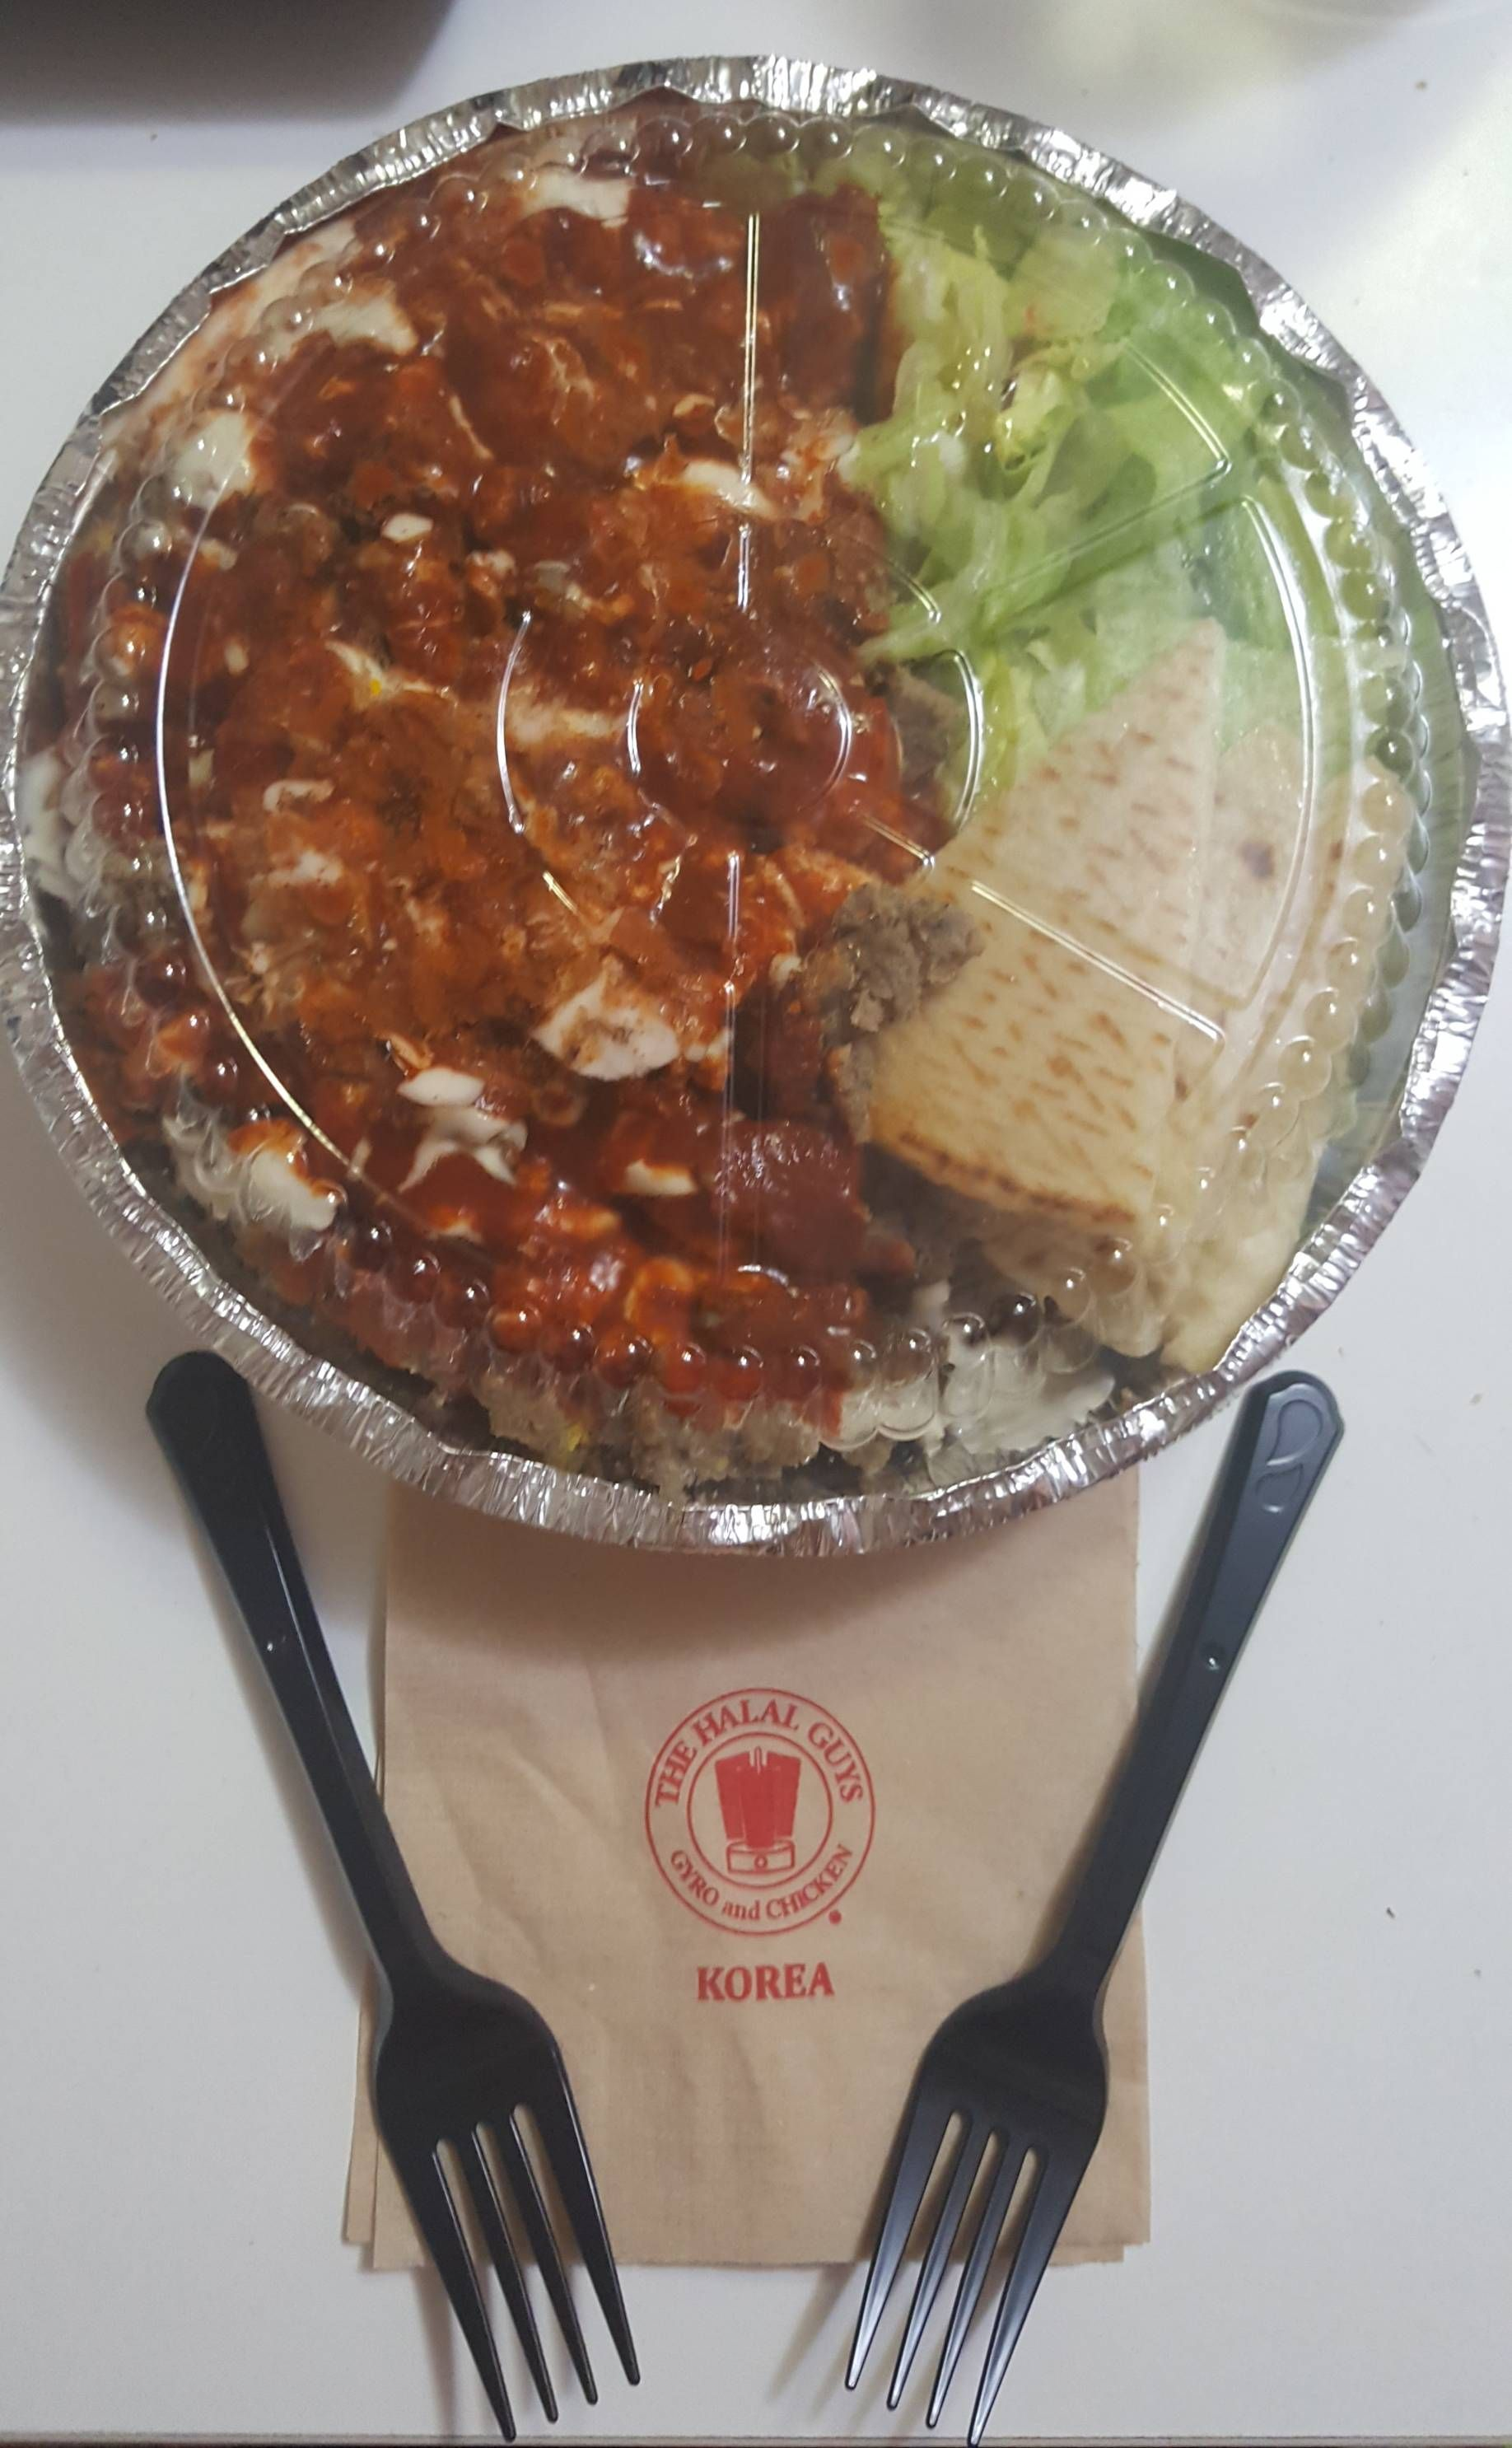 I Ate Halal Guys Korea Nice And Spicy Beef Platter Food Recipes Yemek Gidilecek Yerler Yerler